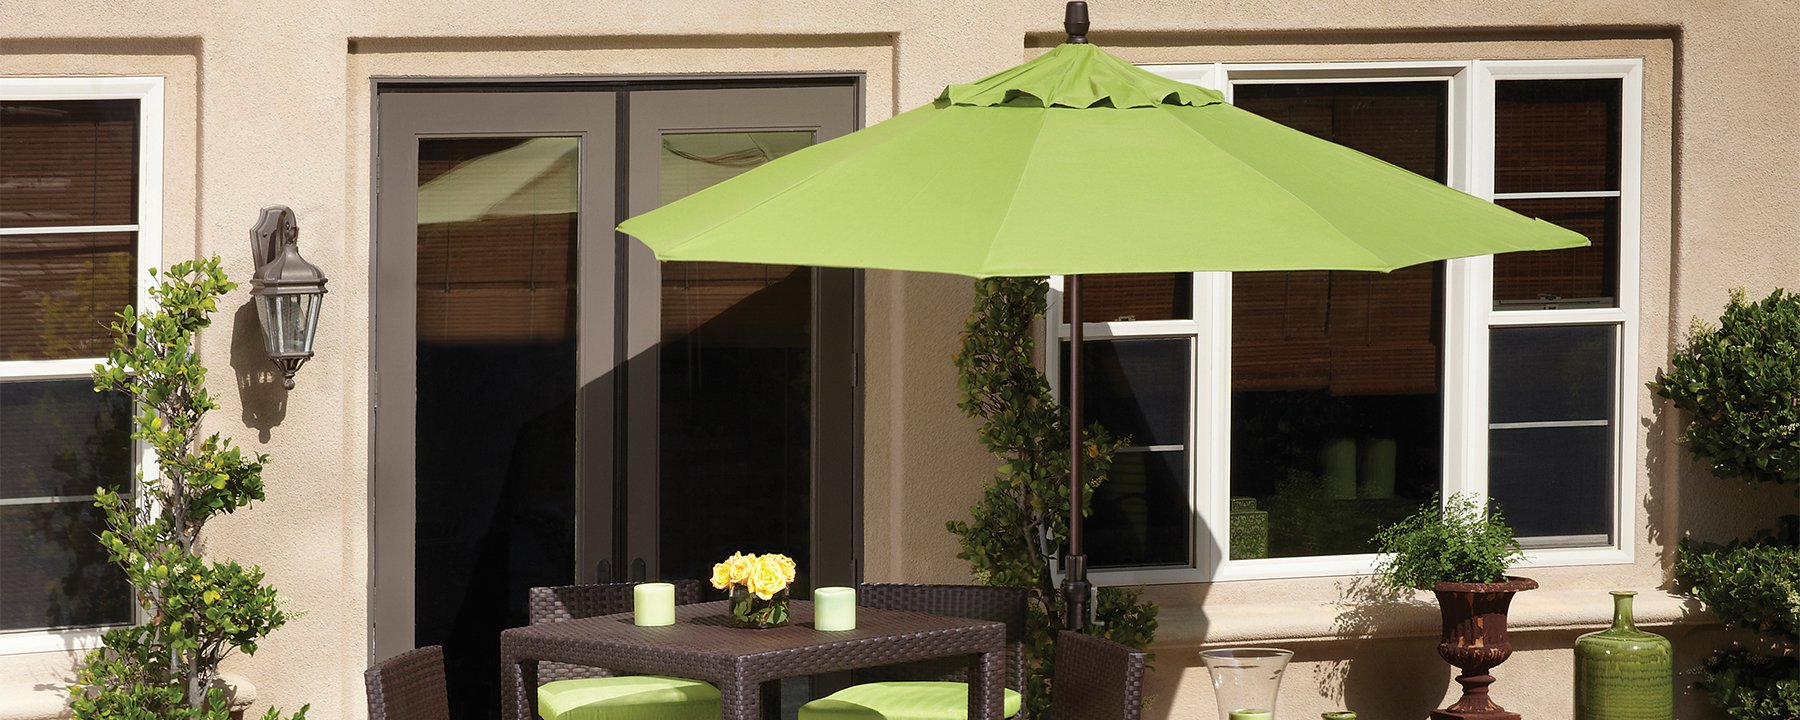 Live outdoors with Flowerland's quality patio furniture that is beautiful, comfortable, and trend-setting!